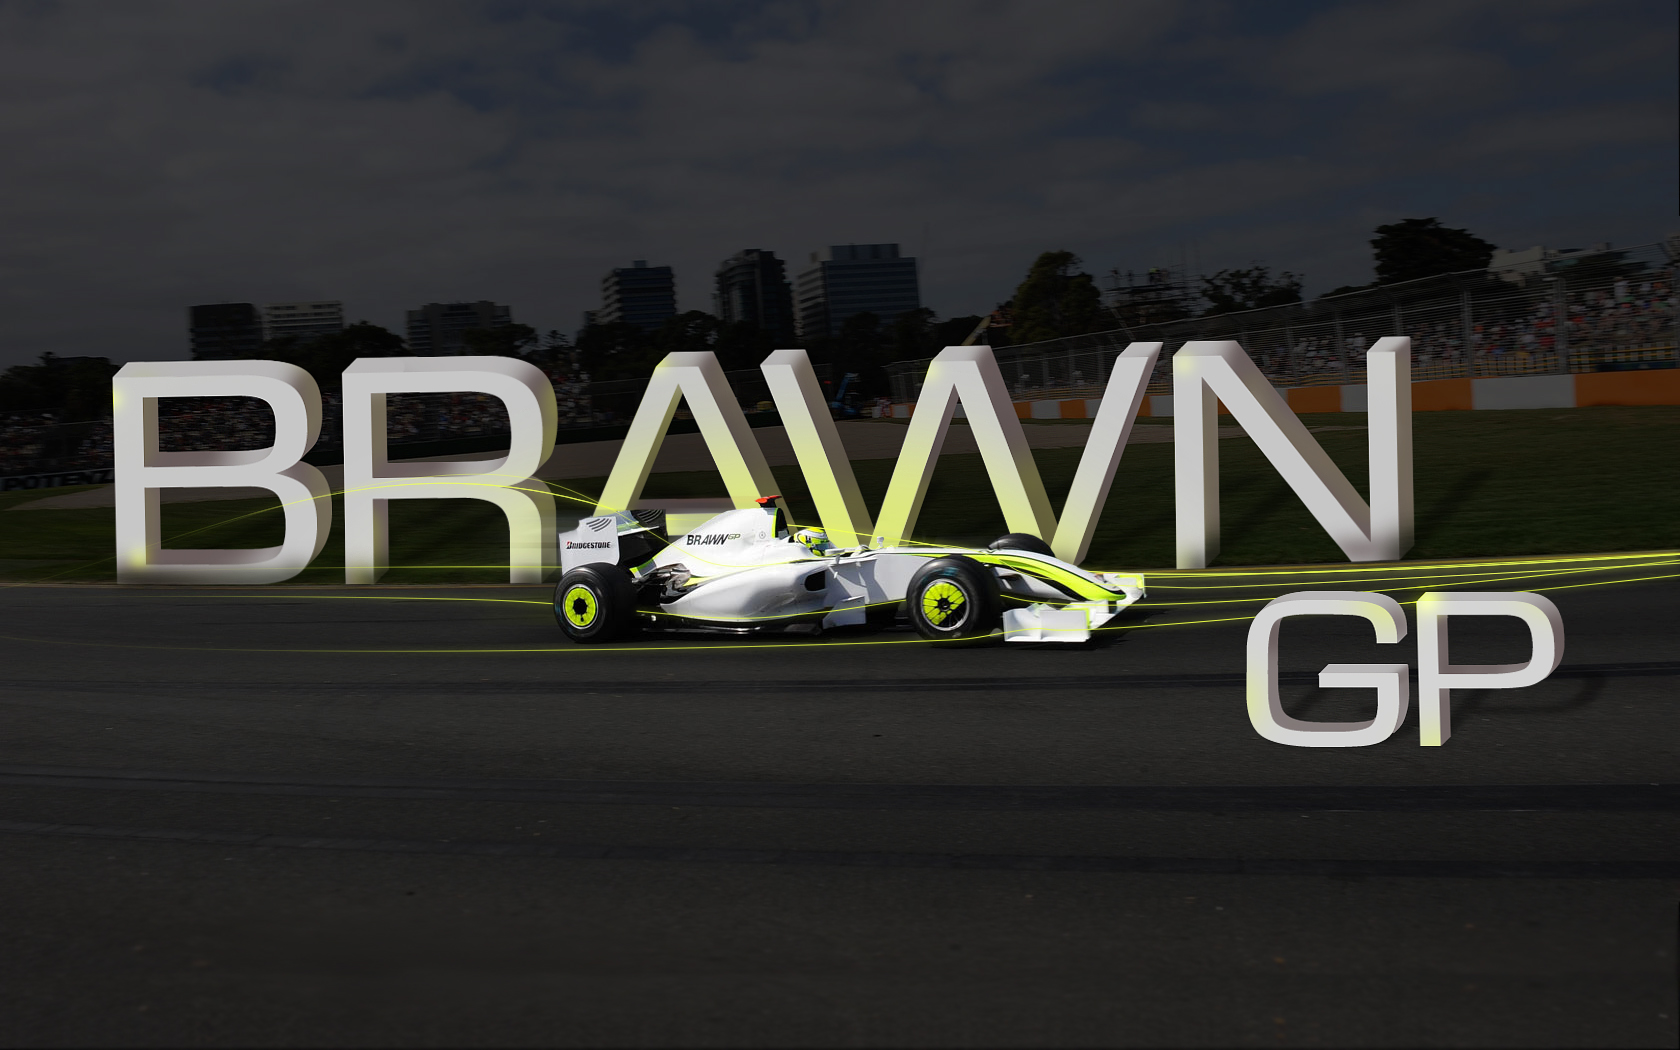 BrawnGP Wallpaper by brandonseaber